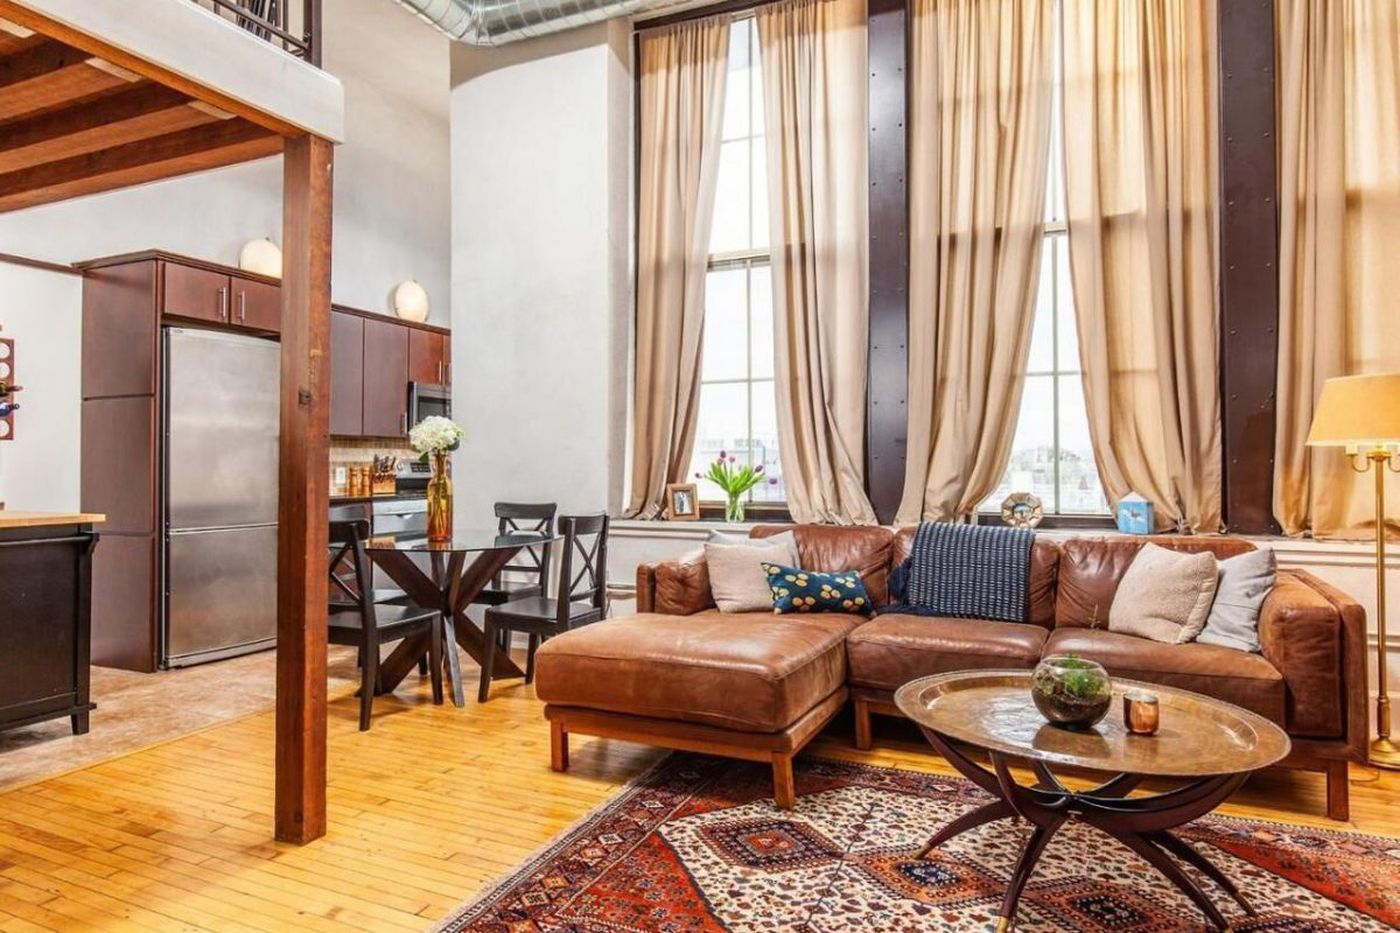 On the market: A $270,000 Hawthorne Lofts unit with great amenities